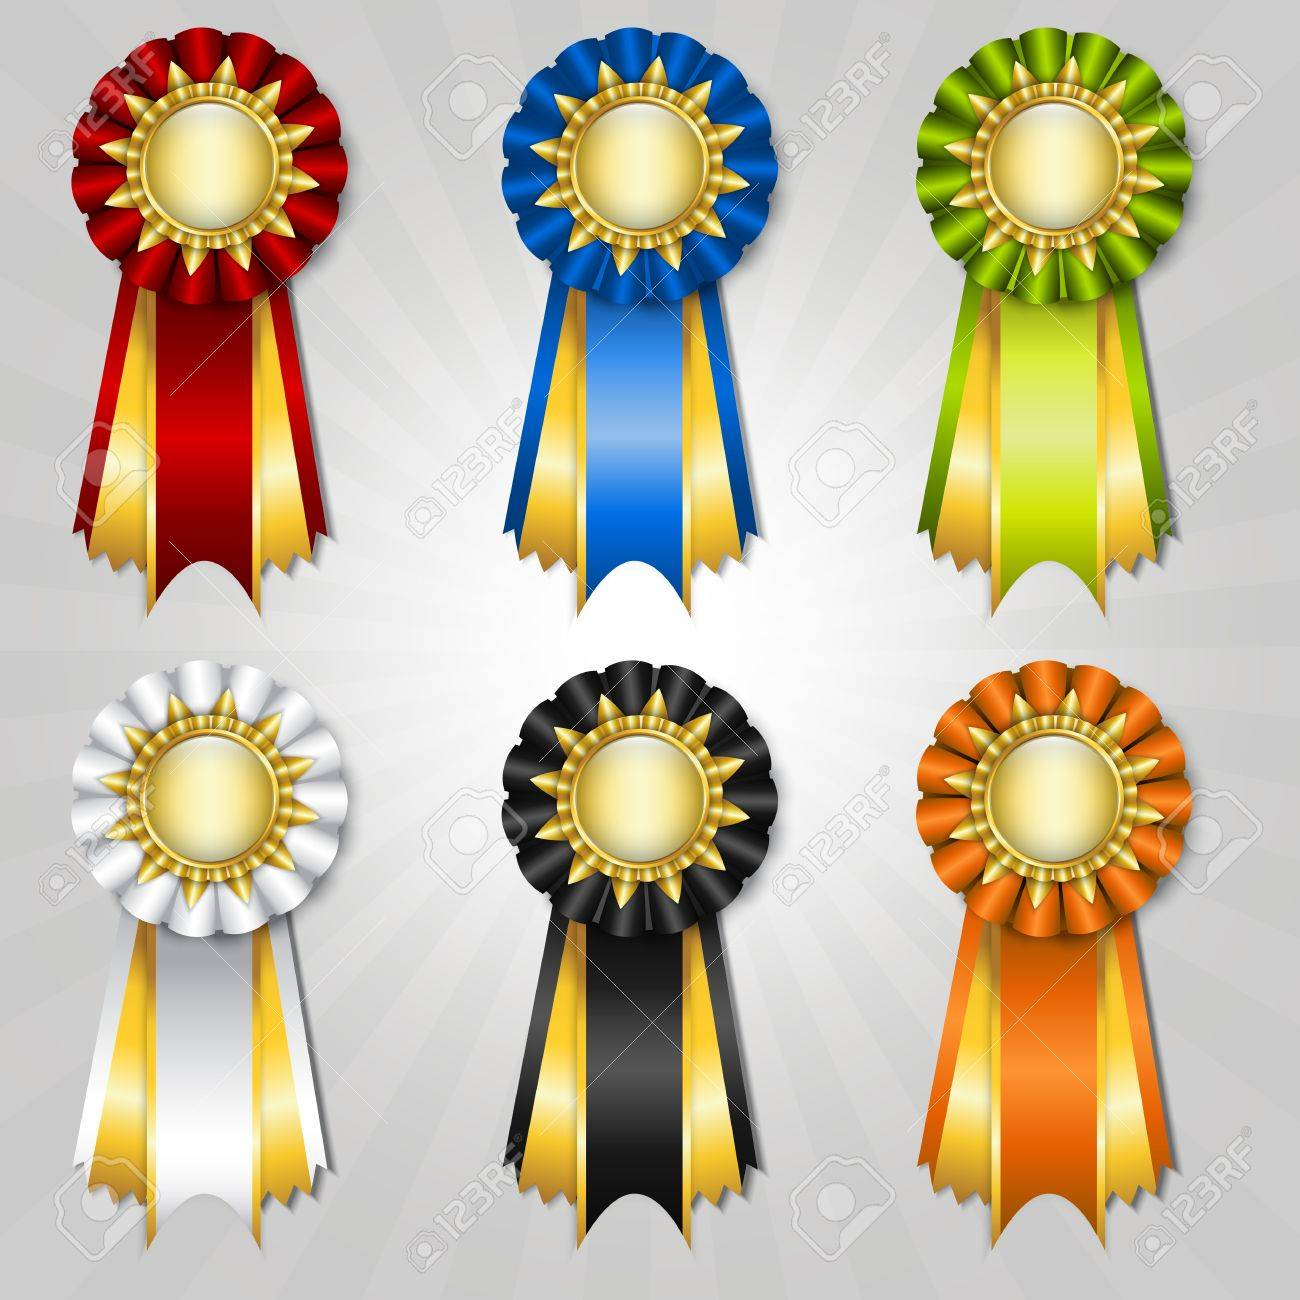 set of vecor prize ribbons with place for text royalty free cliparts